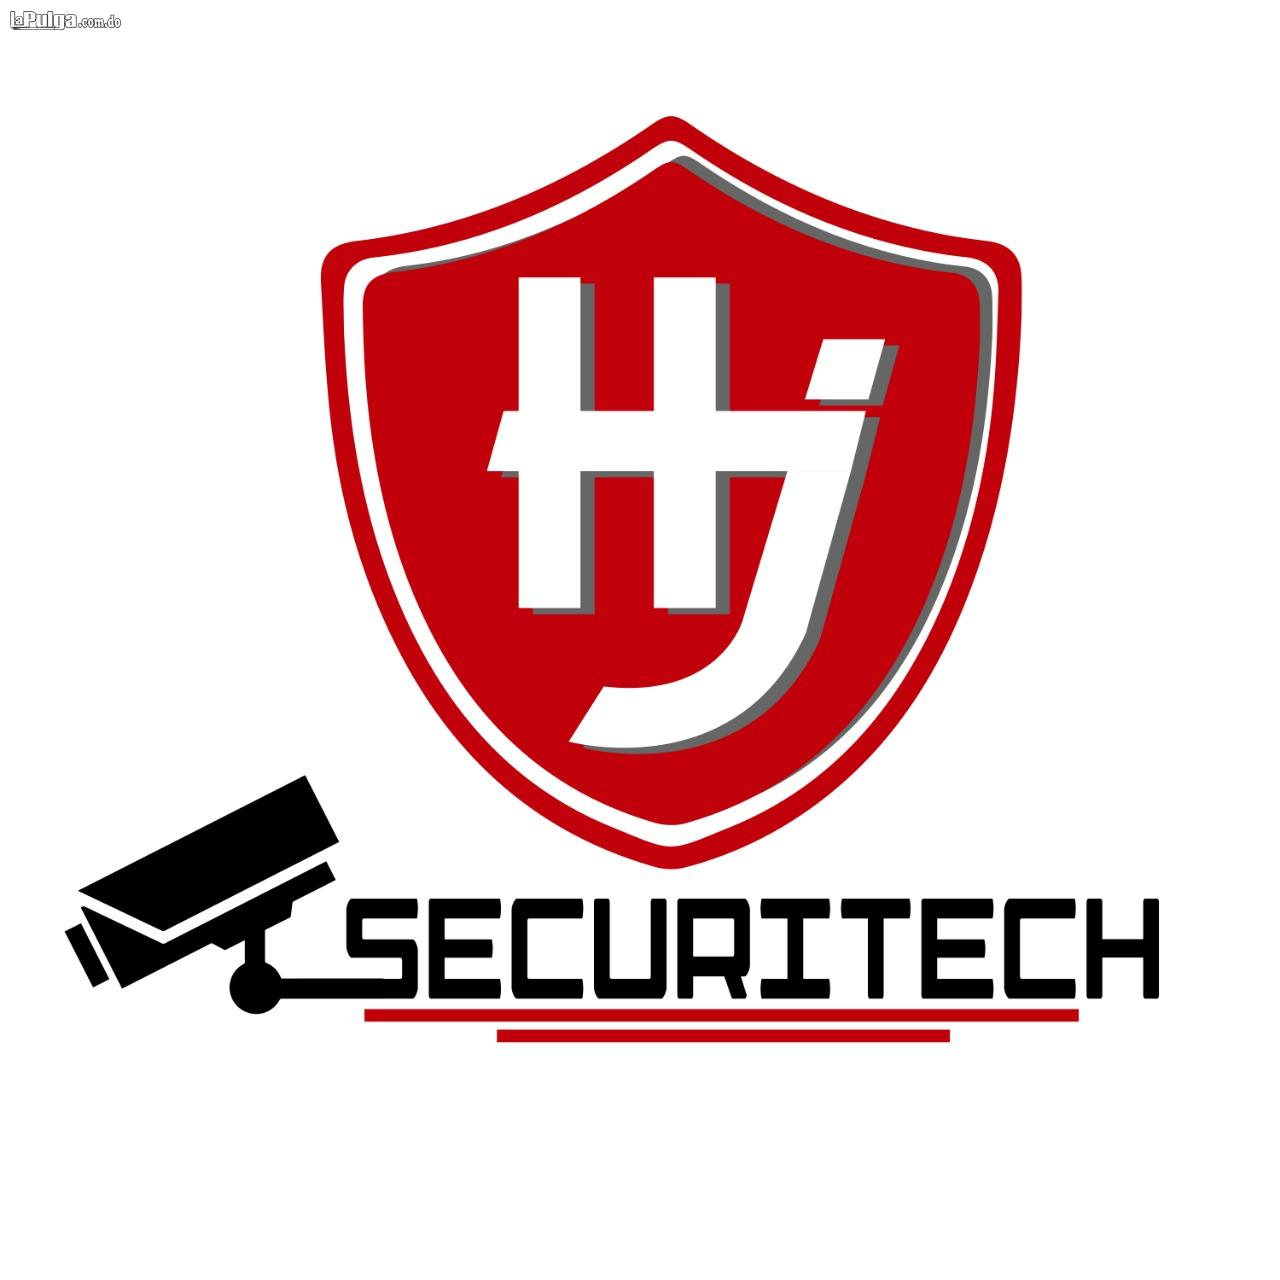 HJ SECURITECH